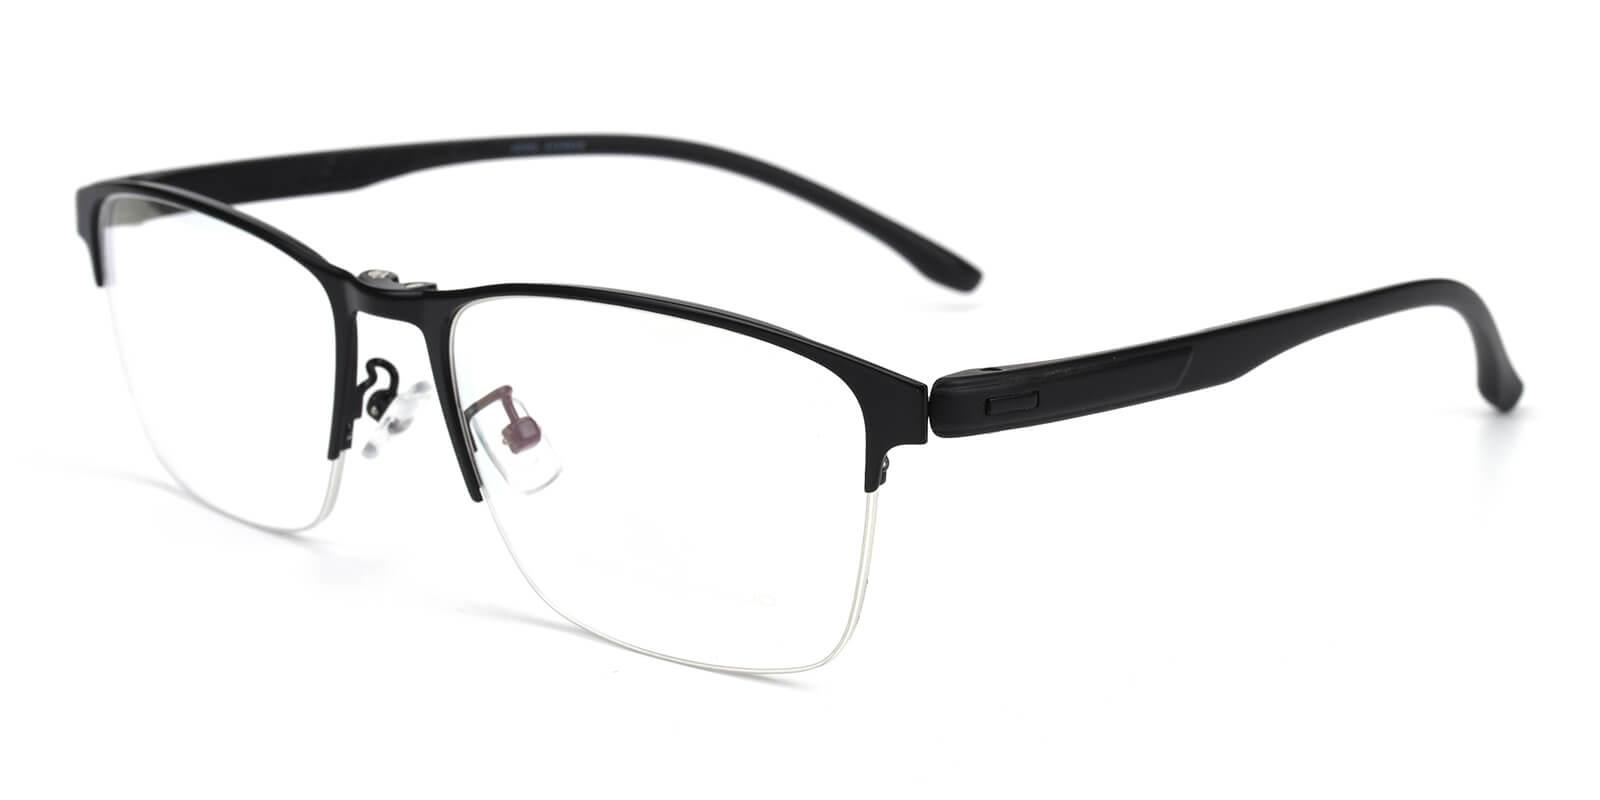 Erisy-Black-Rectangle-Metal-Eyeglasses-additional1